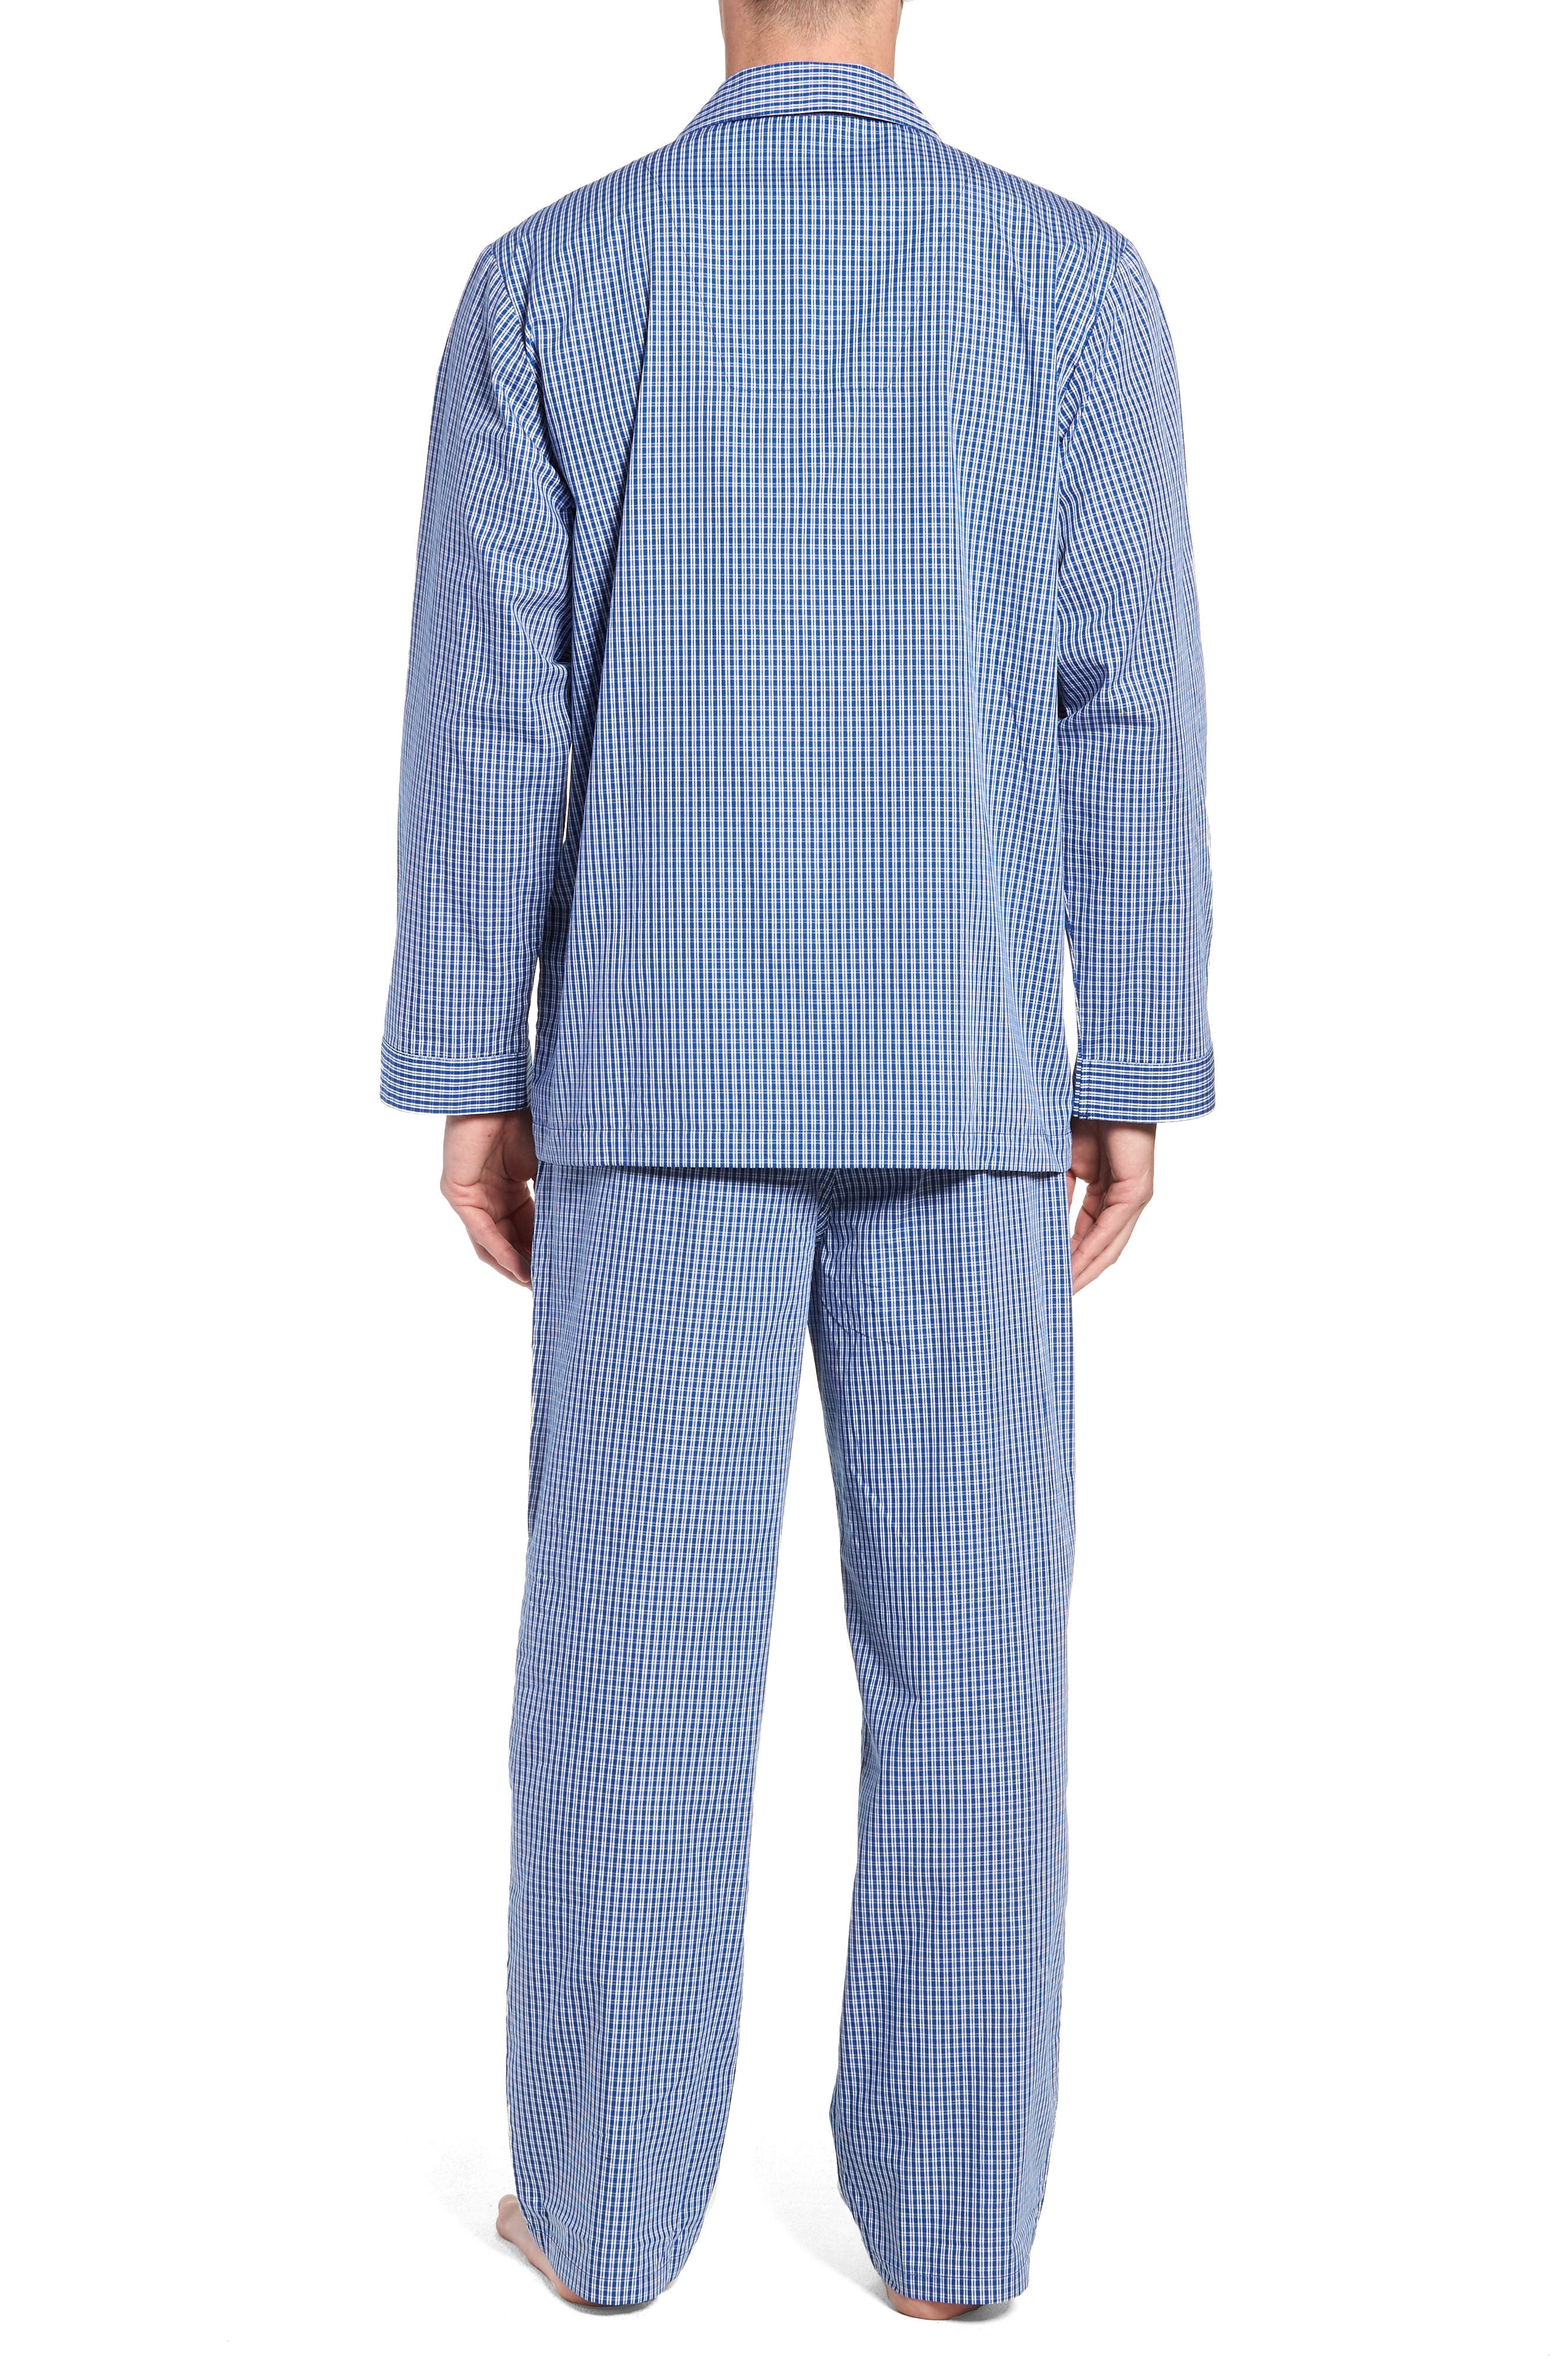 Poplin Pajama Set,                             Alternate thumbnail 2, color,                             BLUE DEEP MICRO CHECK